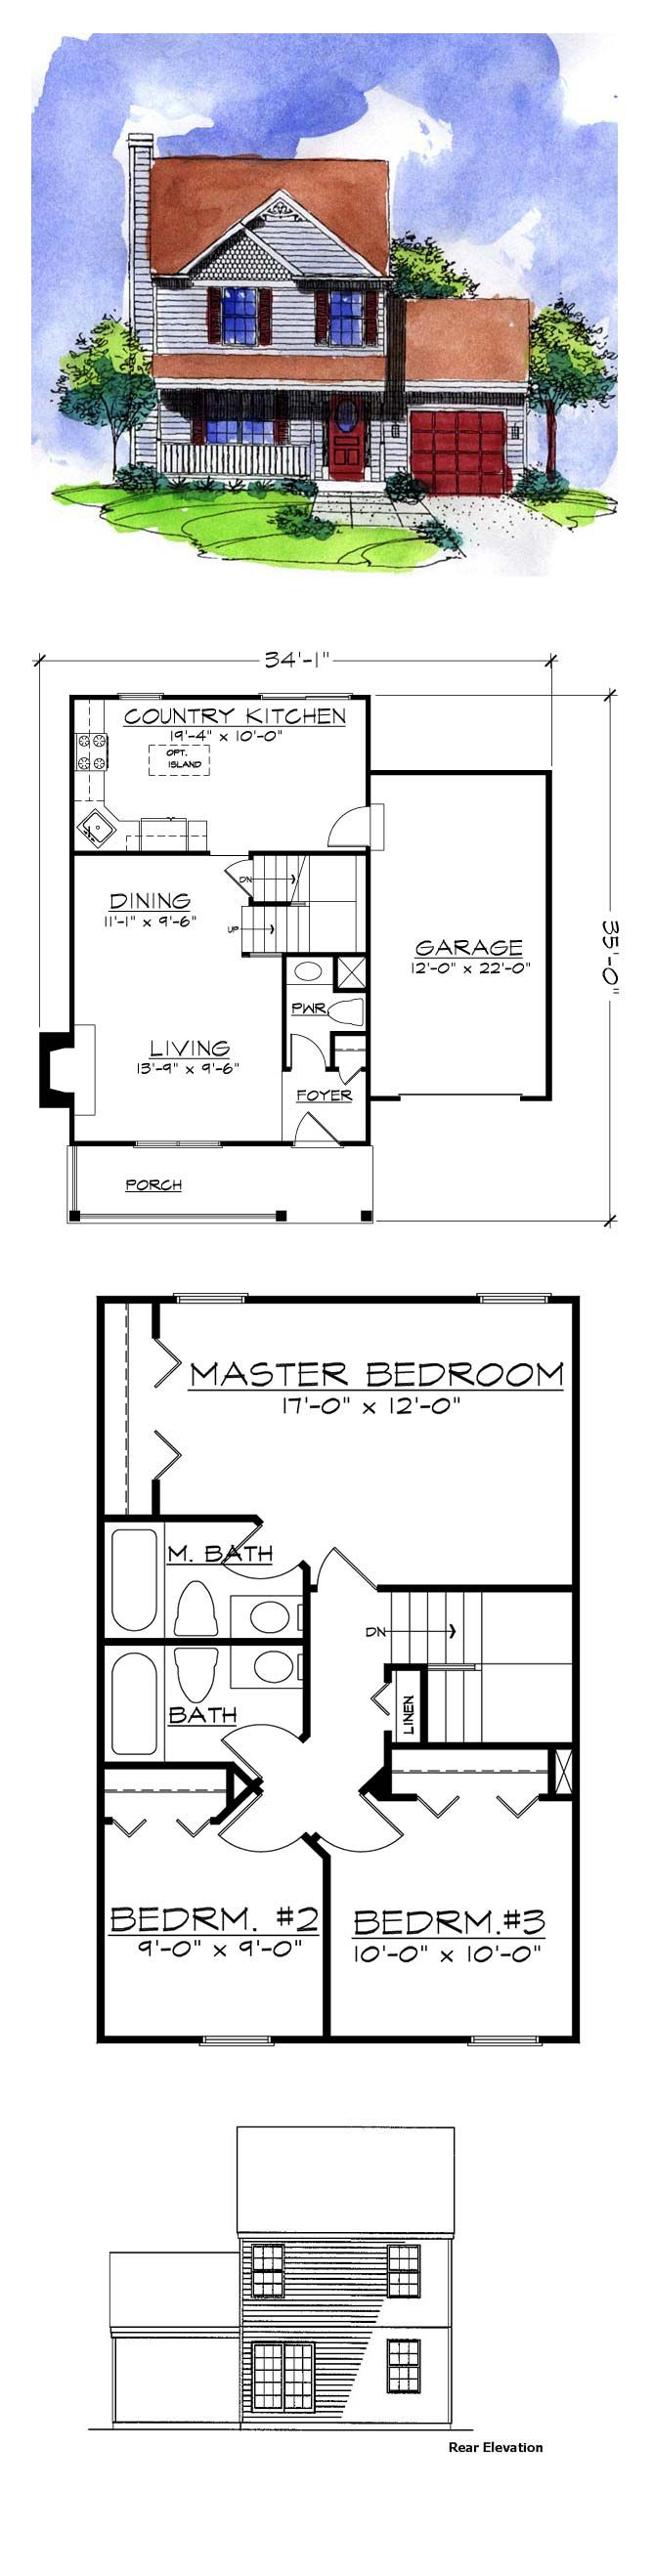 Best 25 narrow lot house plans ideas on pinterest for Narrow bathroom floor plans